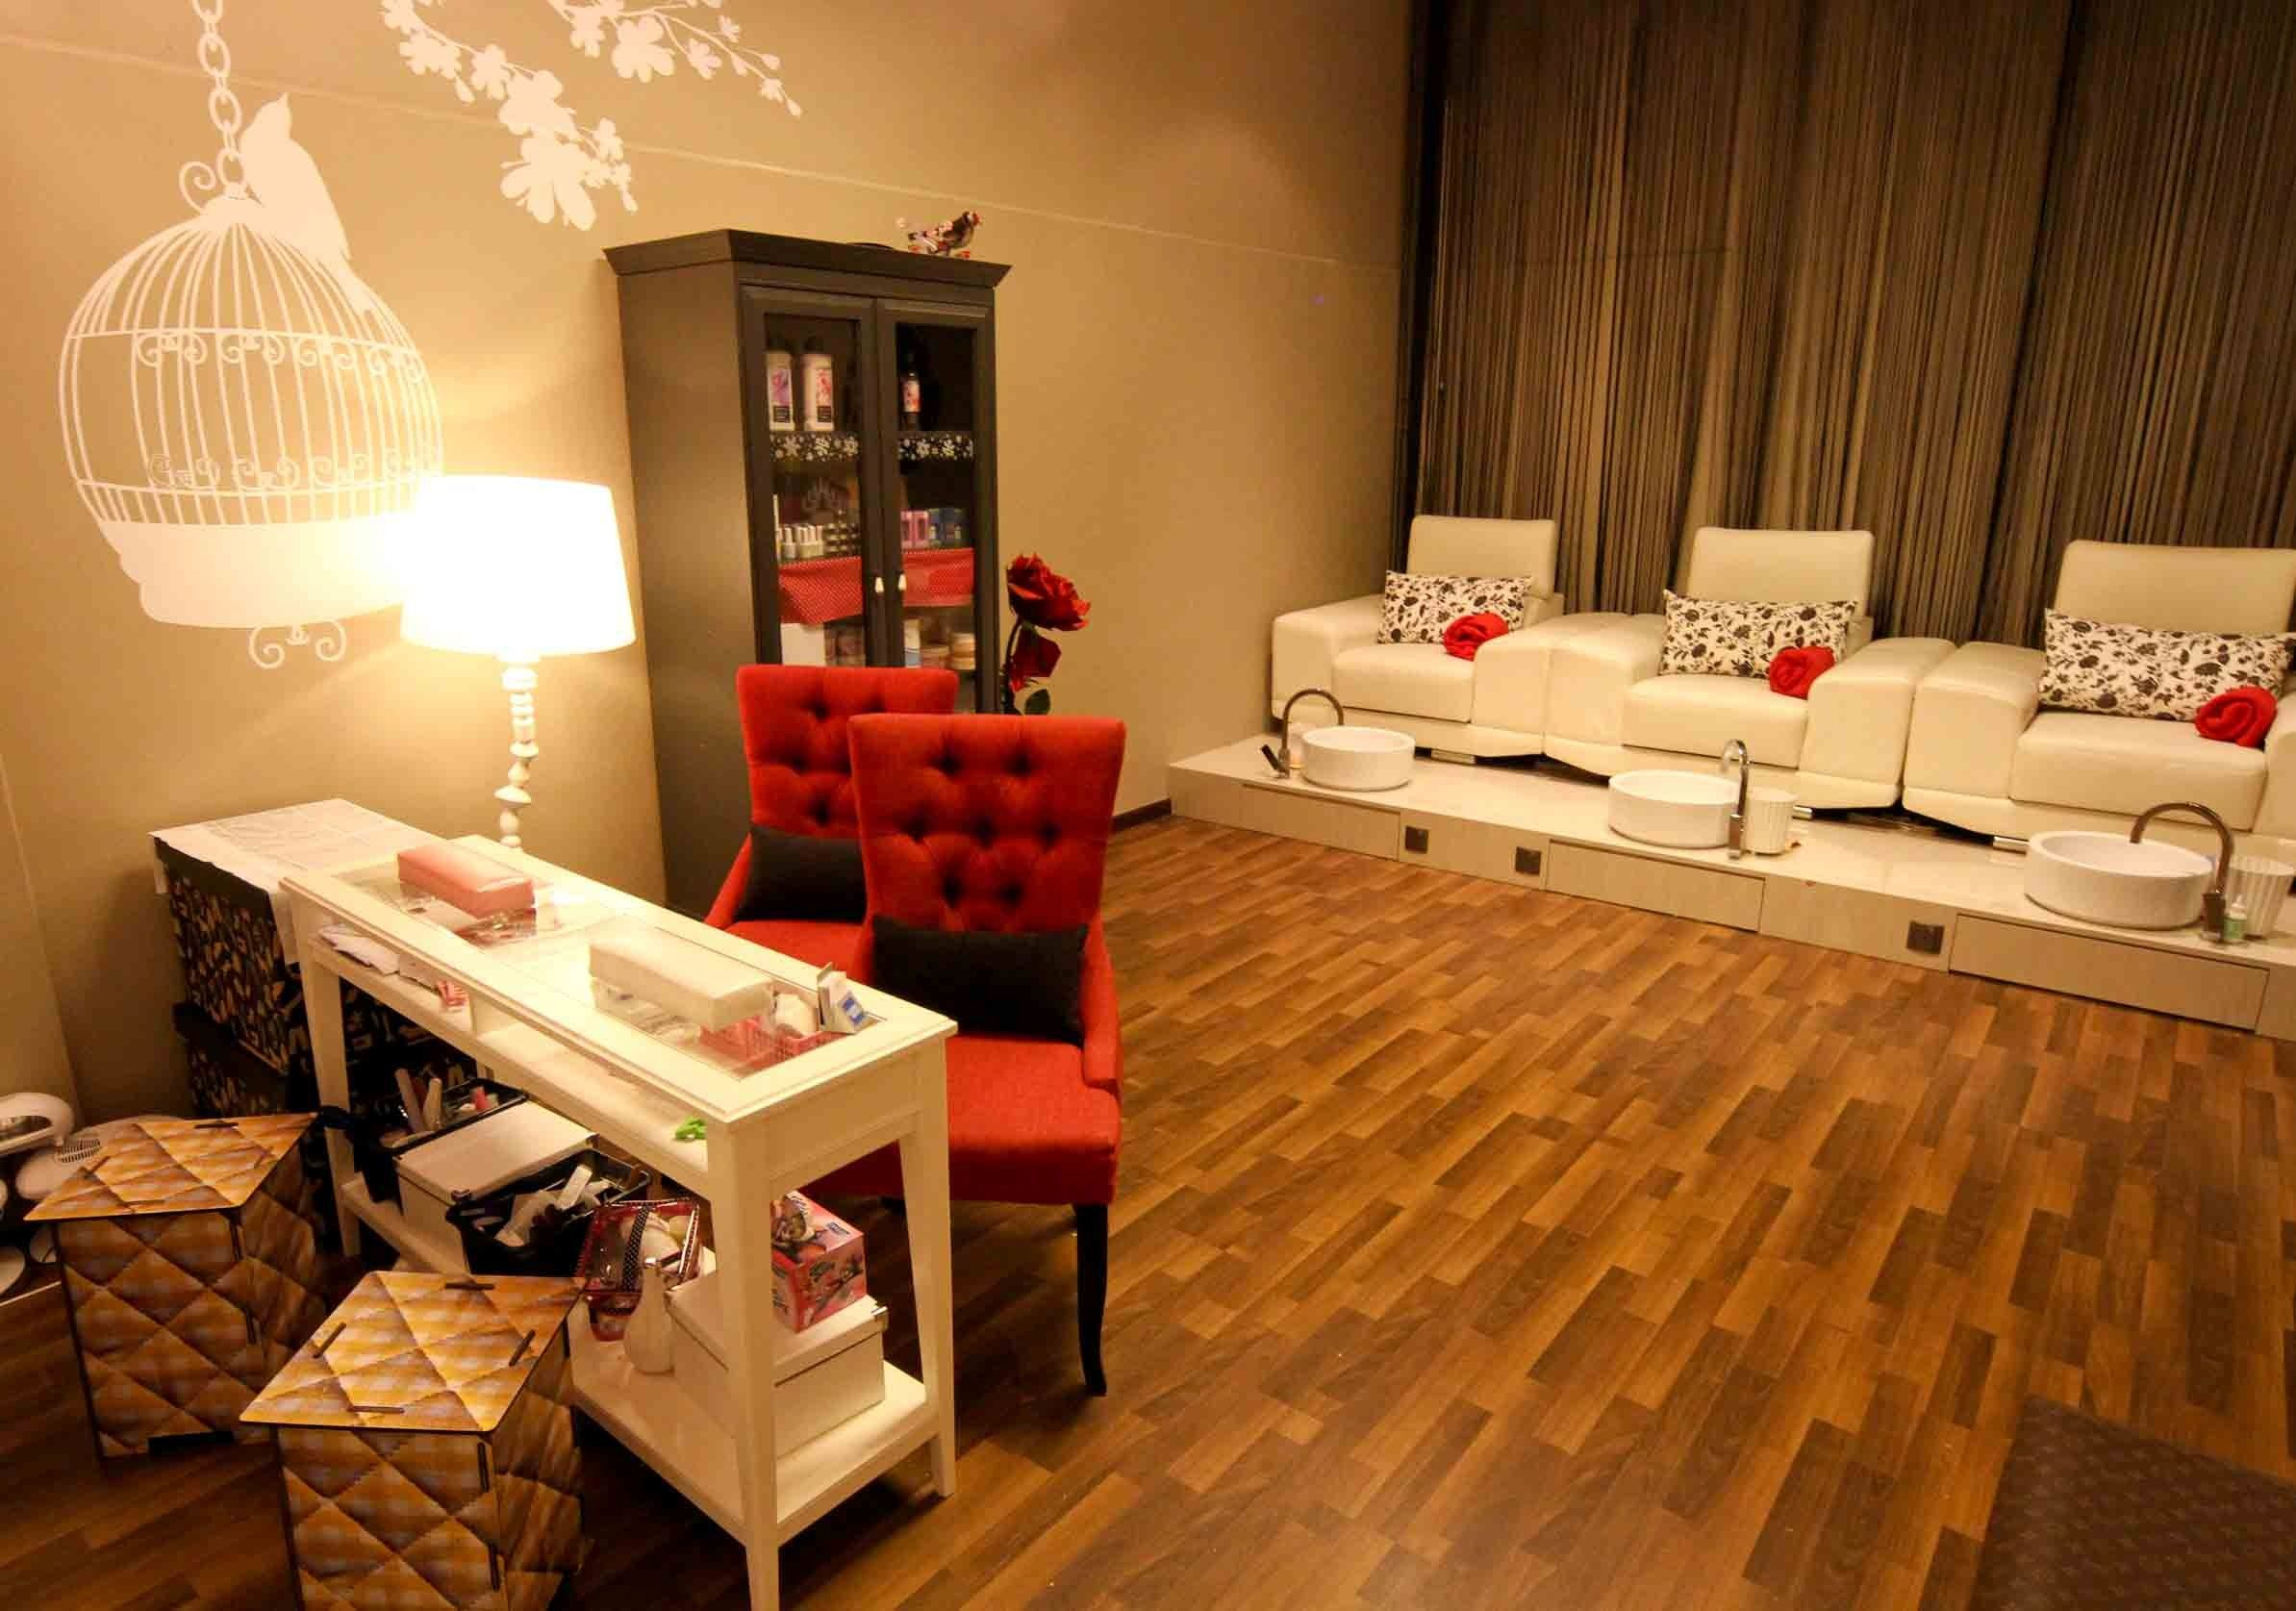 nail salon decor 23 for classic manicure and pedicure at envy nail lounge worth 66 nails. Black Bedroom Furniture Sets. Home Design Ideas